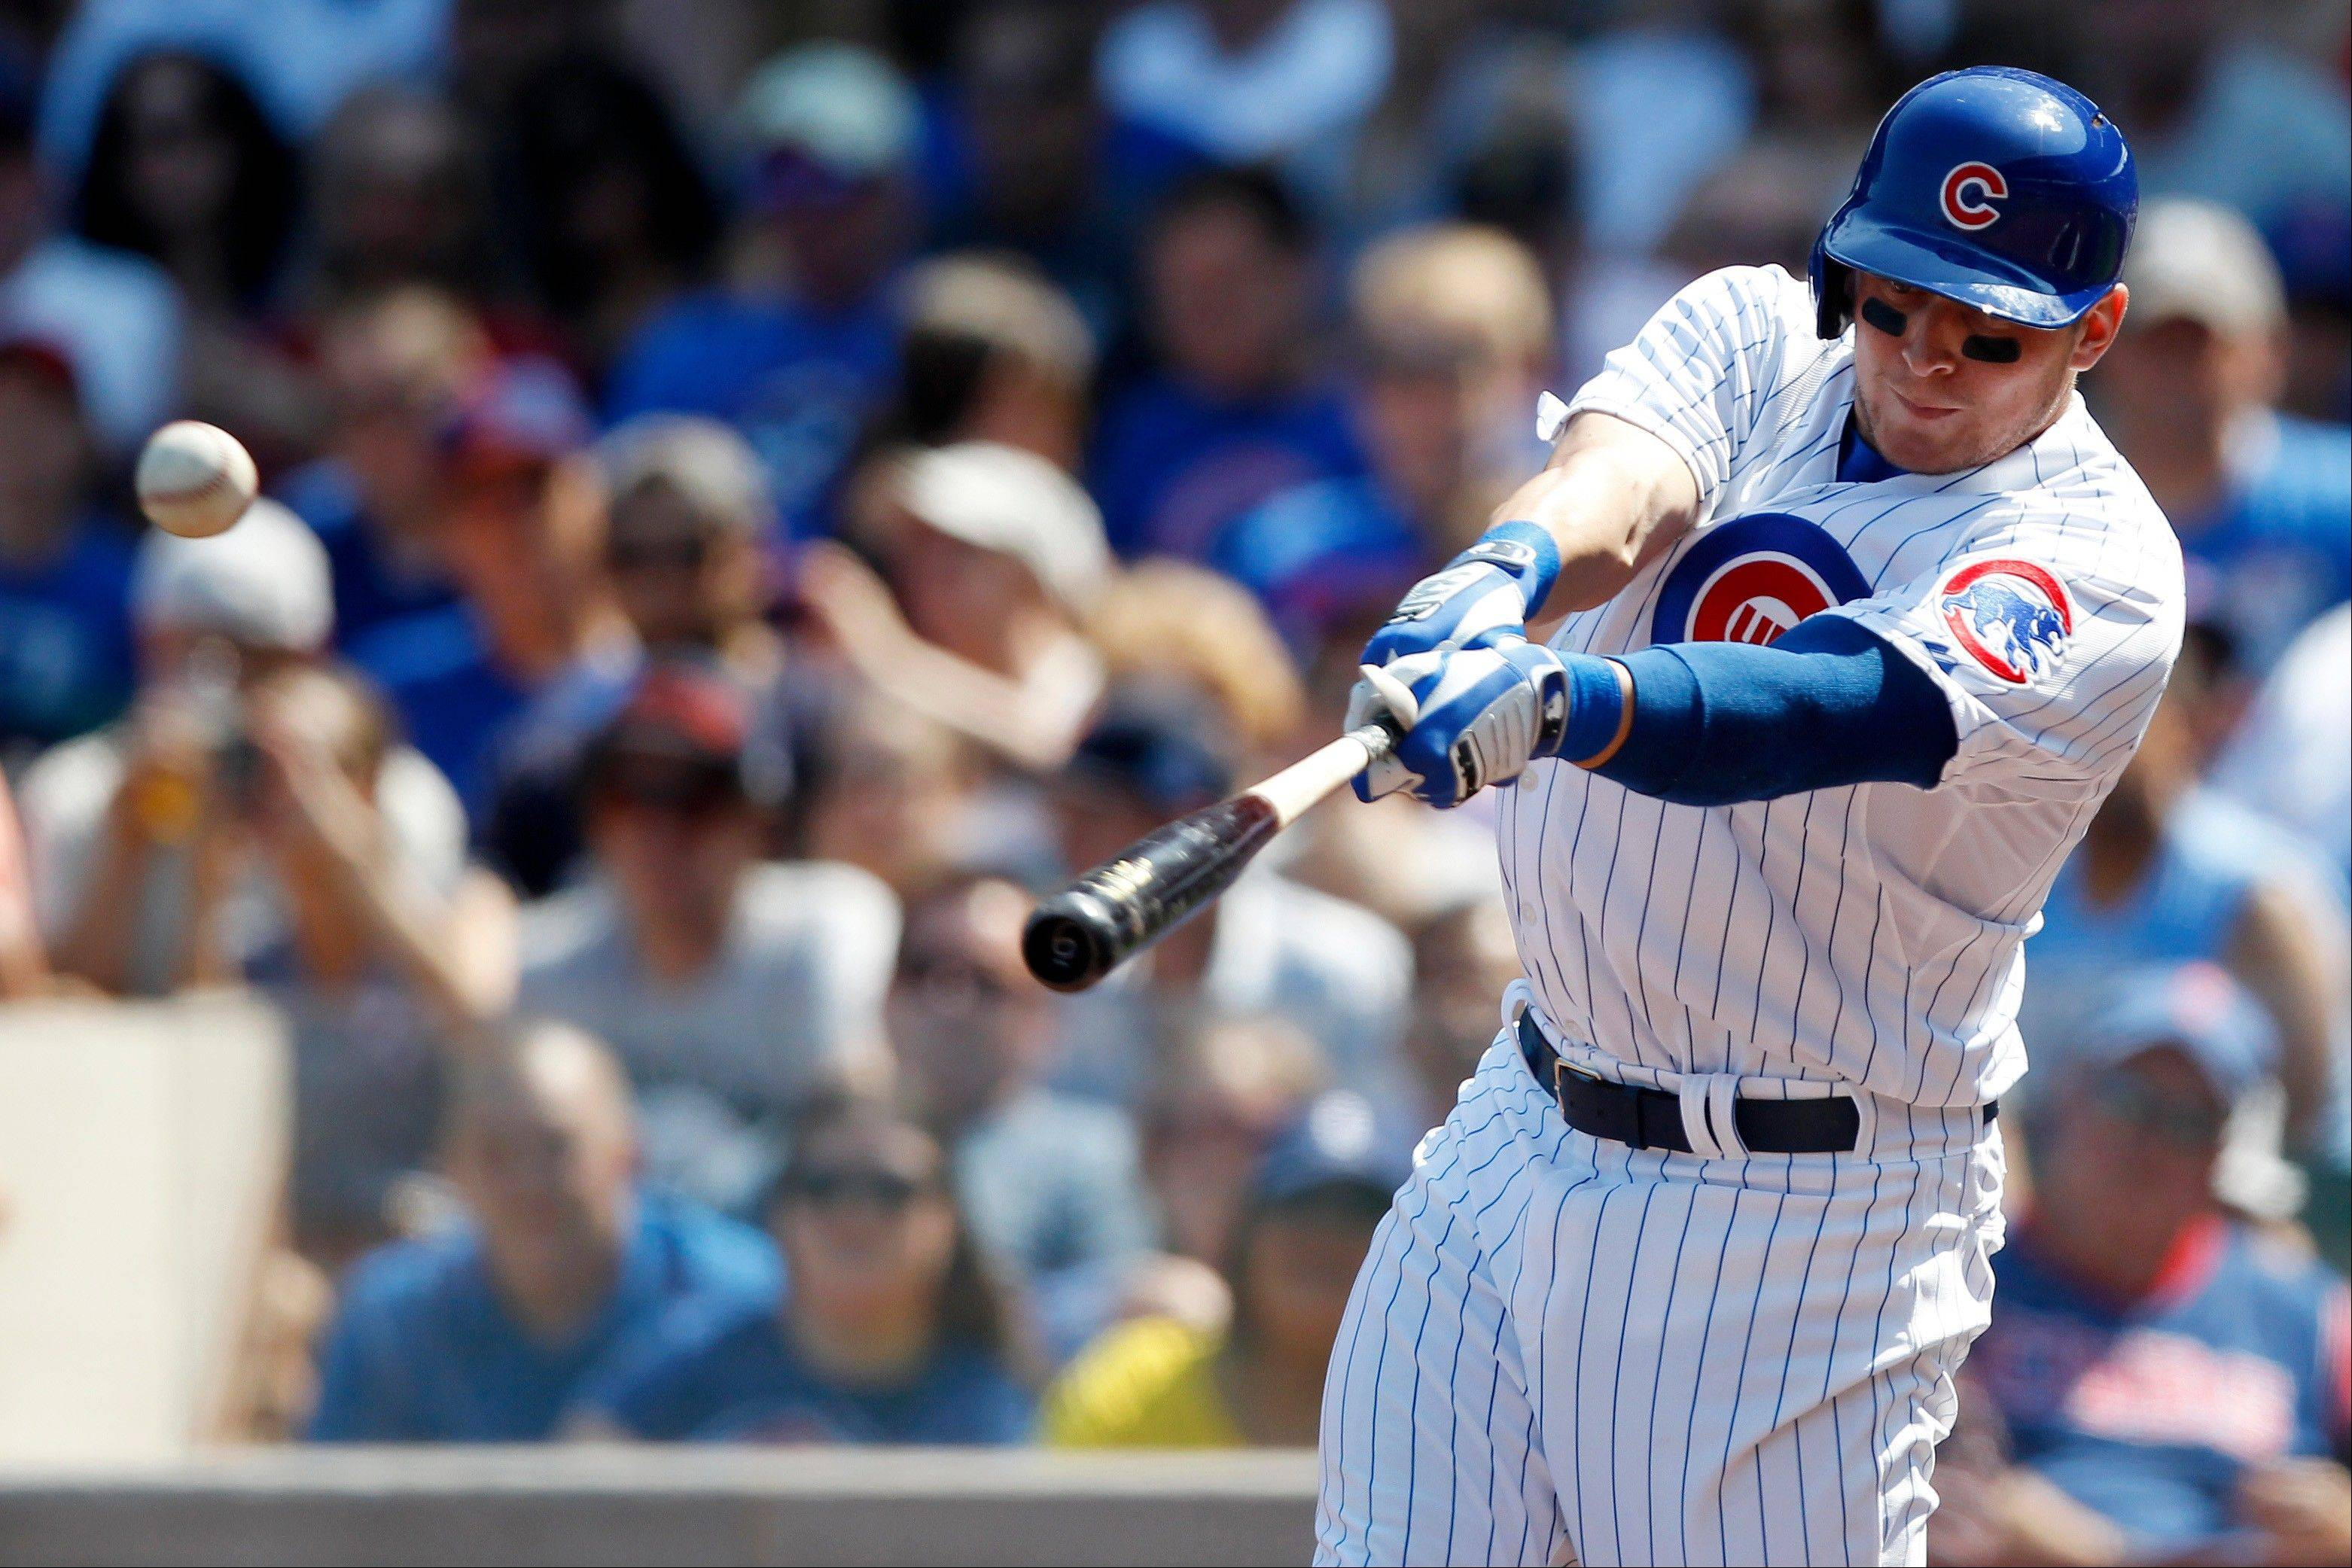 Back after missing two months with a broken rib, Ryan Sweeney hits a single Sunday in the Cubs' victory over the Phillies at Wrigley Field.